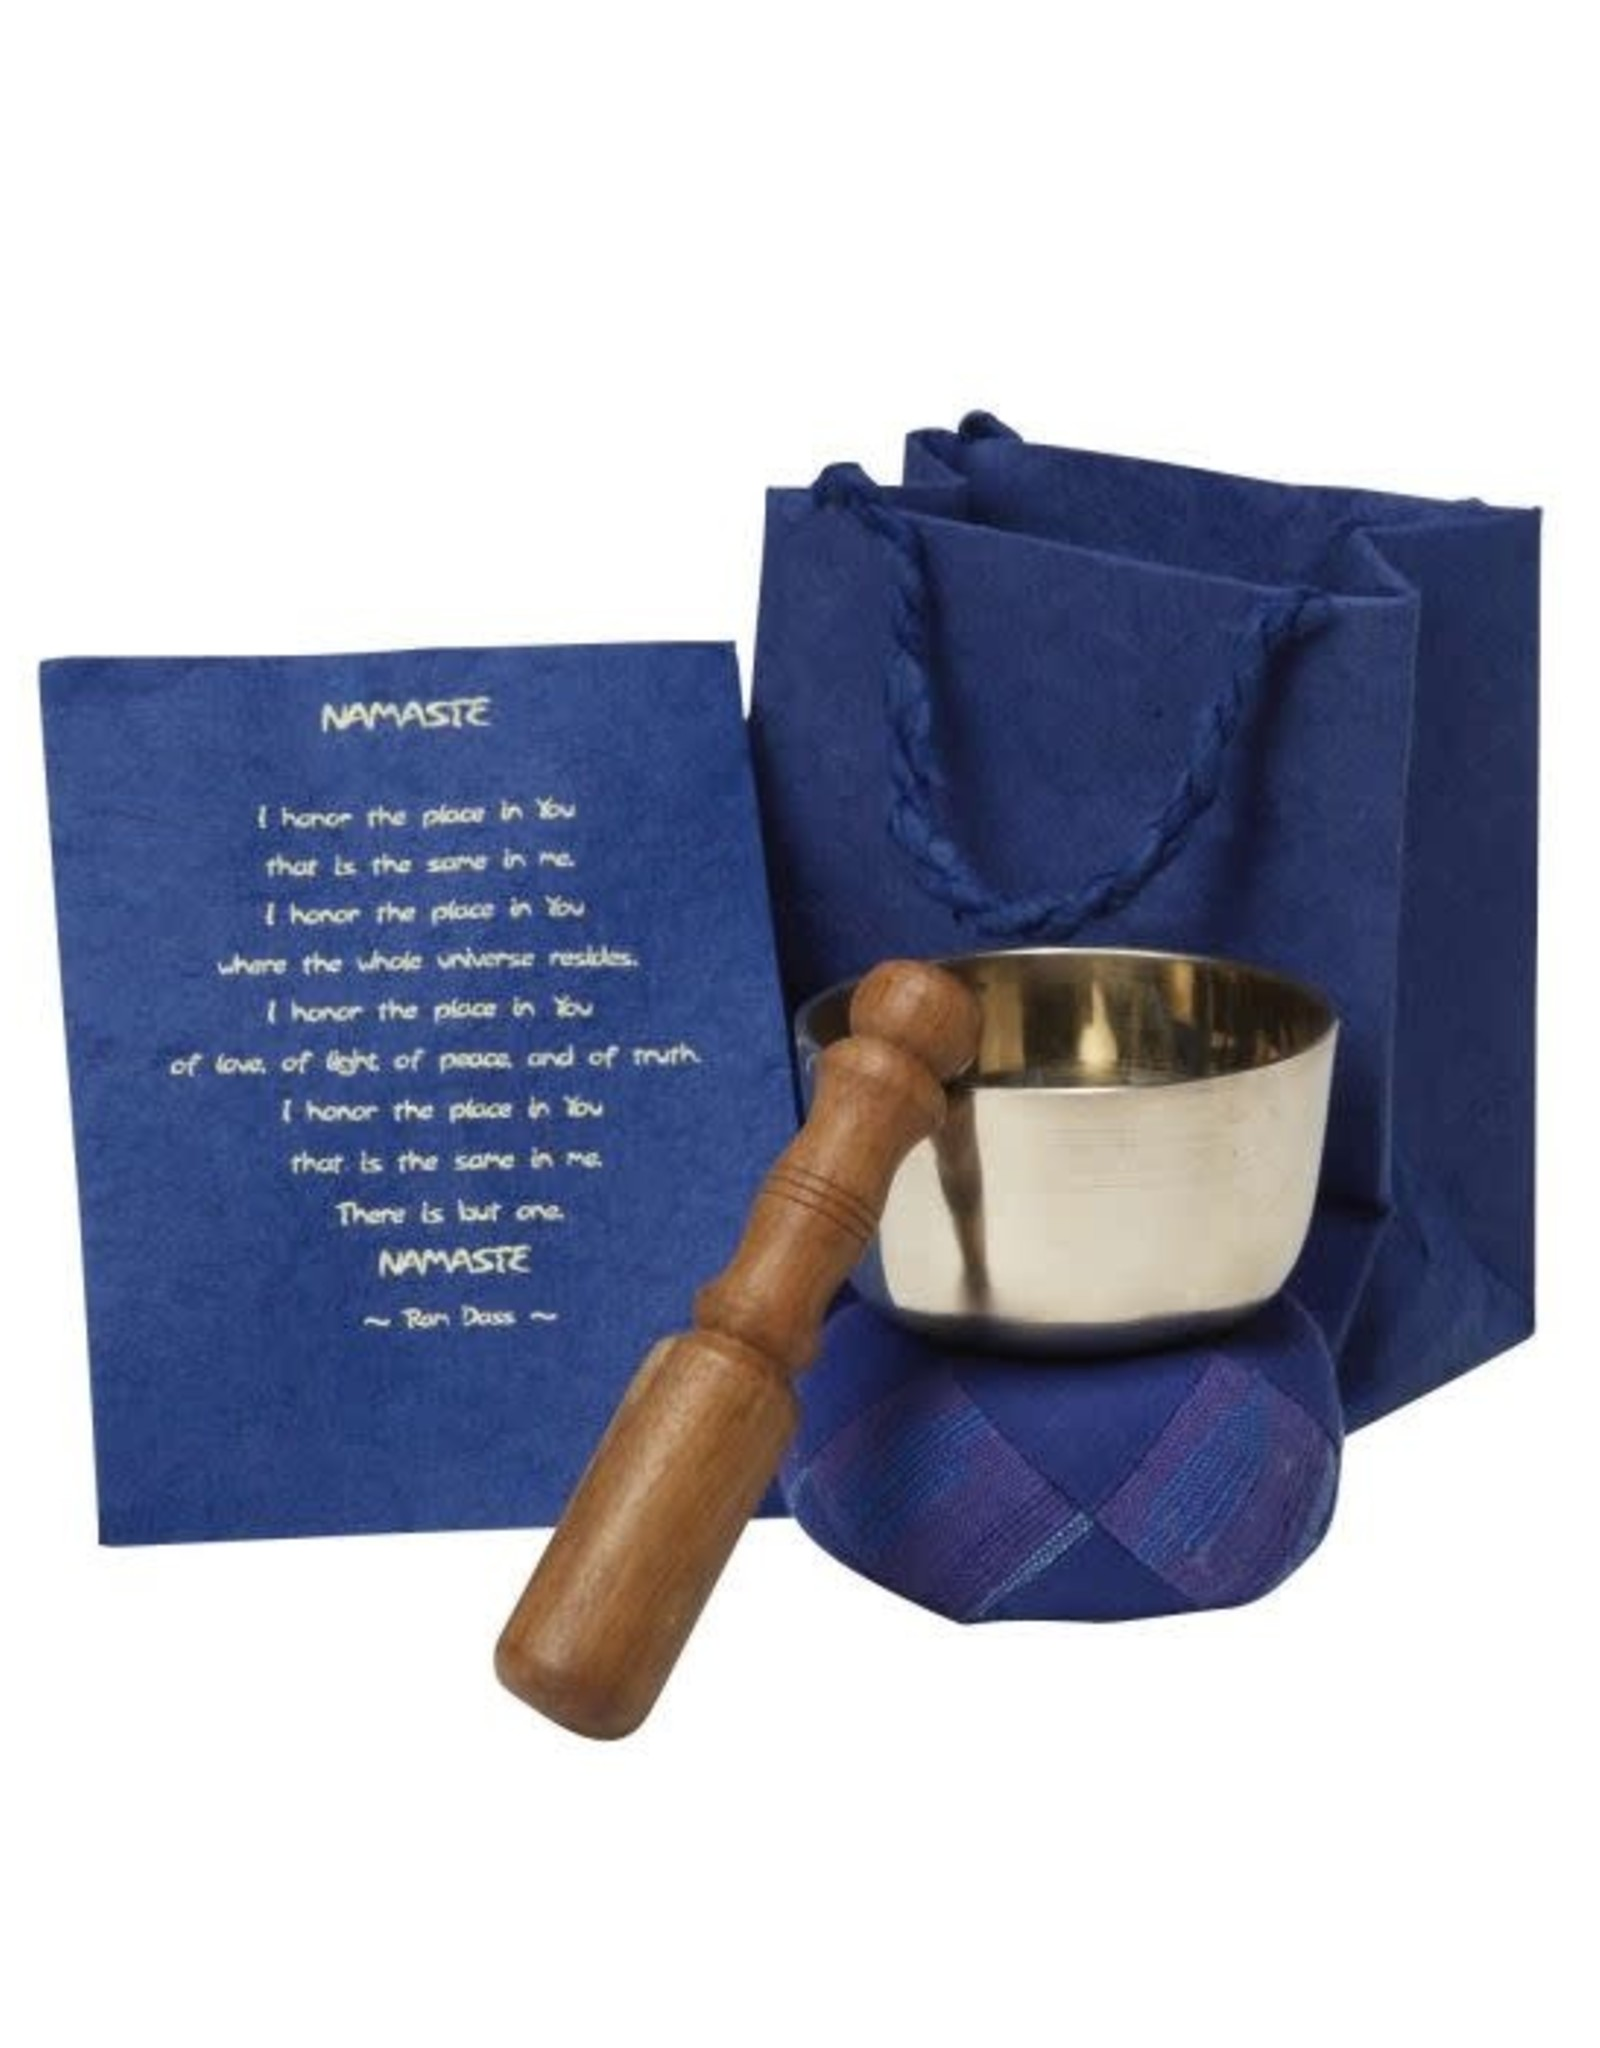 TTV USA Namaste Singing Bowl